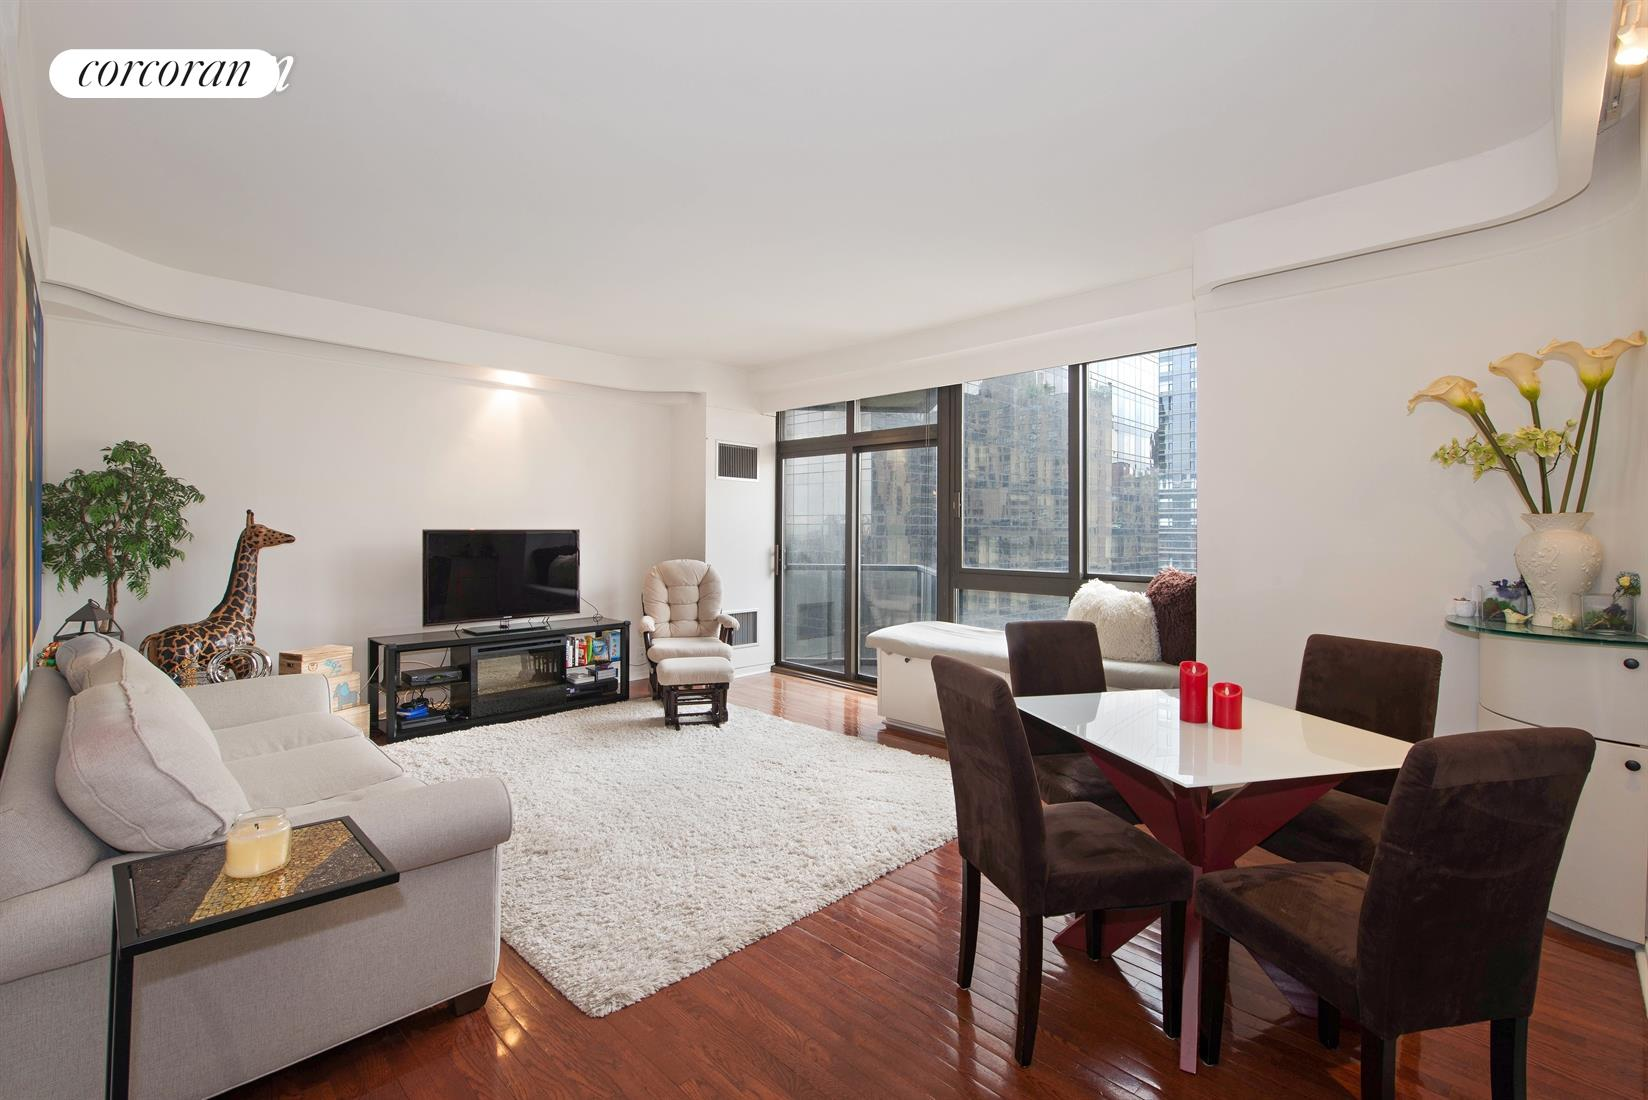 Fantastic, sun-flooded 1 bedroom, 1 bathroom apartment available for rent at 100 United Nations Plaza  one of Manhattans premier white-glove condominiums. Offering the largest south-facing one bedroom layout in the building, unit 22C enjoys amazing natural light from its oversized windows, 9-foot high ceilings and two private balconies. Step out onto either balcony to take in the direct East River views including the iconic Pepsi-Cola sign.The spacious living room is ideal for entertaining where you and your guests can enjoy impressive skyline views including the majestic Chrysler Building. It also features custom built-ins and cove lighting. The kitchen has a combination washer and dryer unit, while the sizeable bedroom has a wall of custom closets and its own private balcony.  The marble bathroom has a Jacuzzi bathtub and sliding glass doors. Additional features include hardwood floors and central heat and A/C. Minimum 1 year lease term. Sorry no pets allowed.Located on East 48th Street and First Ave - 100 United Nations Plaza has an amazing staff, 24 hour doorman, valet and concierge service, a beautifully renovated lobby, on-site management office, a newly renovated meeting room/party room, beautifully landscaped gardens with waterfalls, laundry room, a residents only fitness center and an attached 24 hour attended garage. Conveniently located to transportation and many great restaurants and shops.